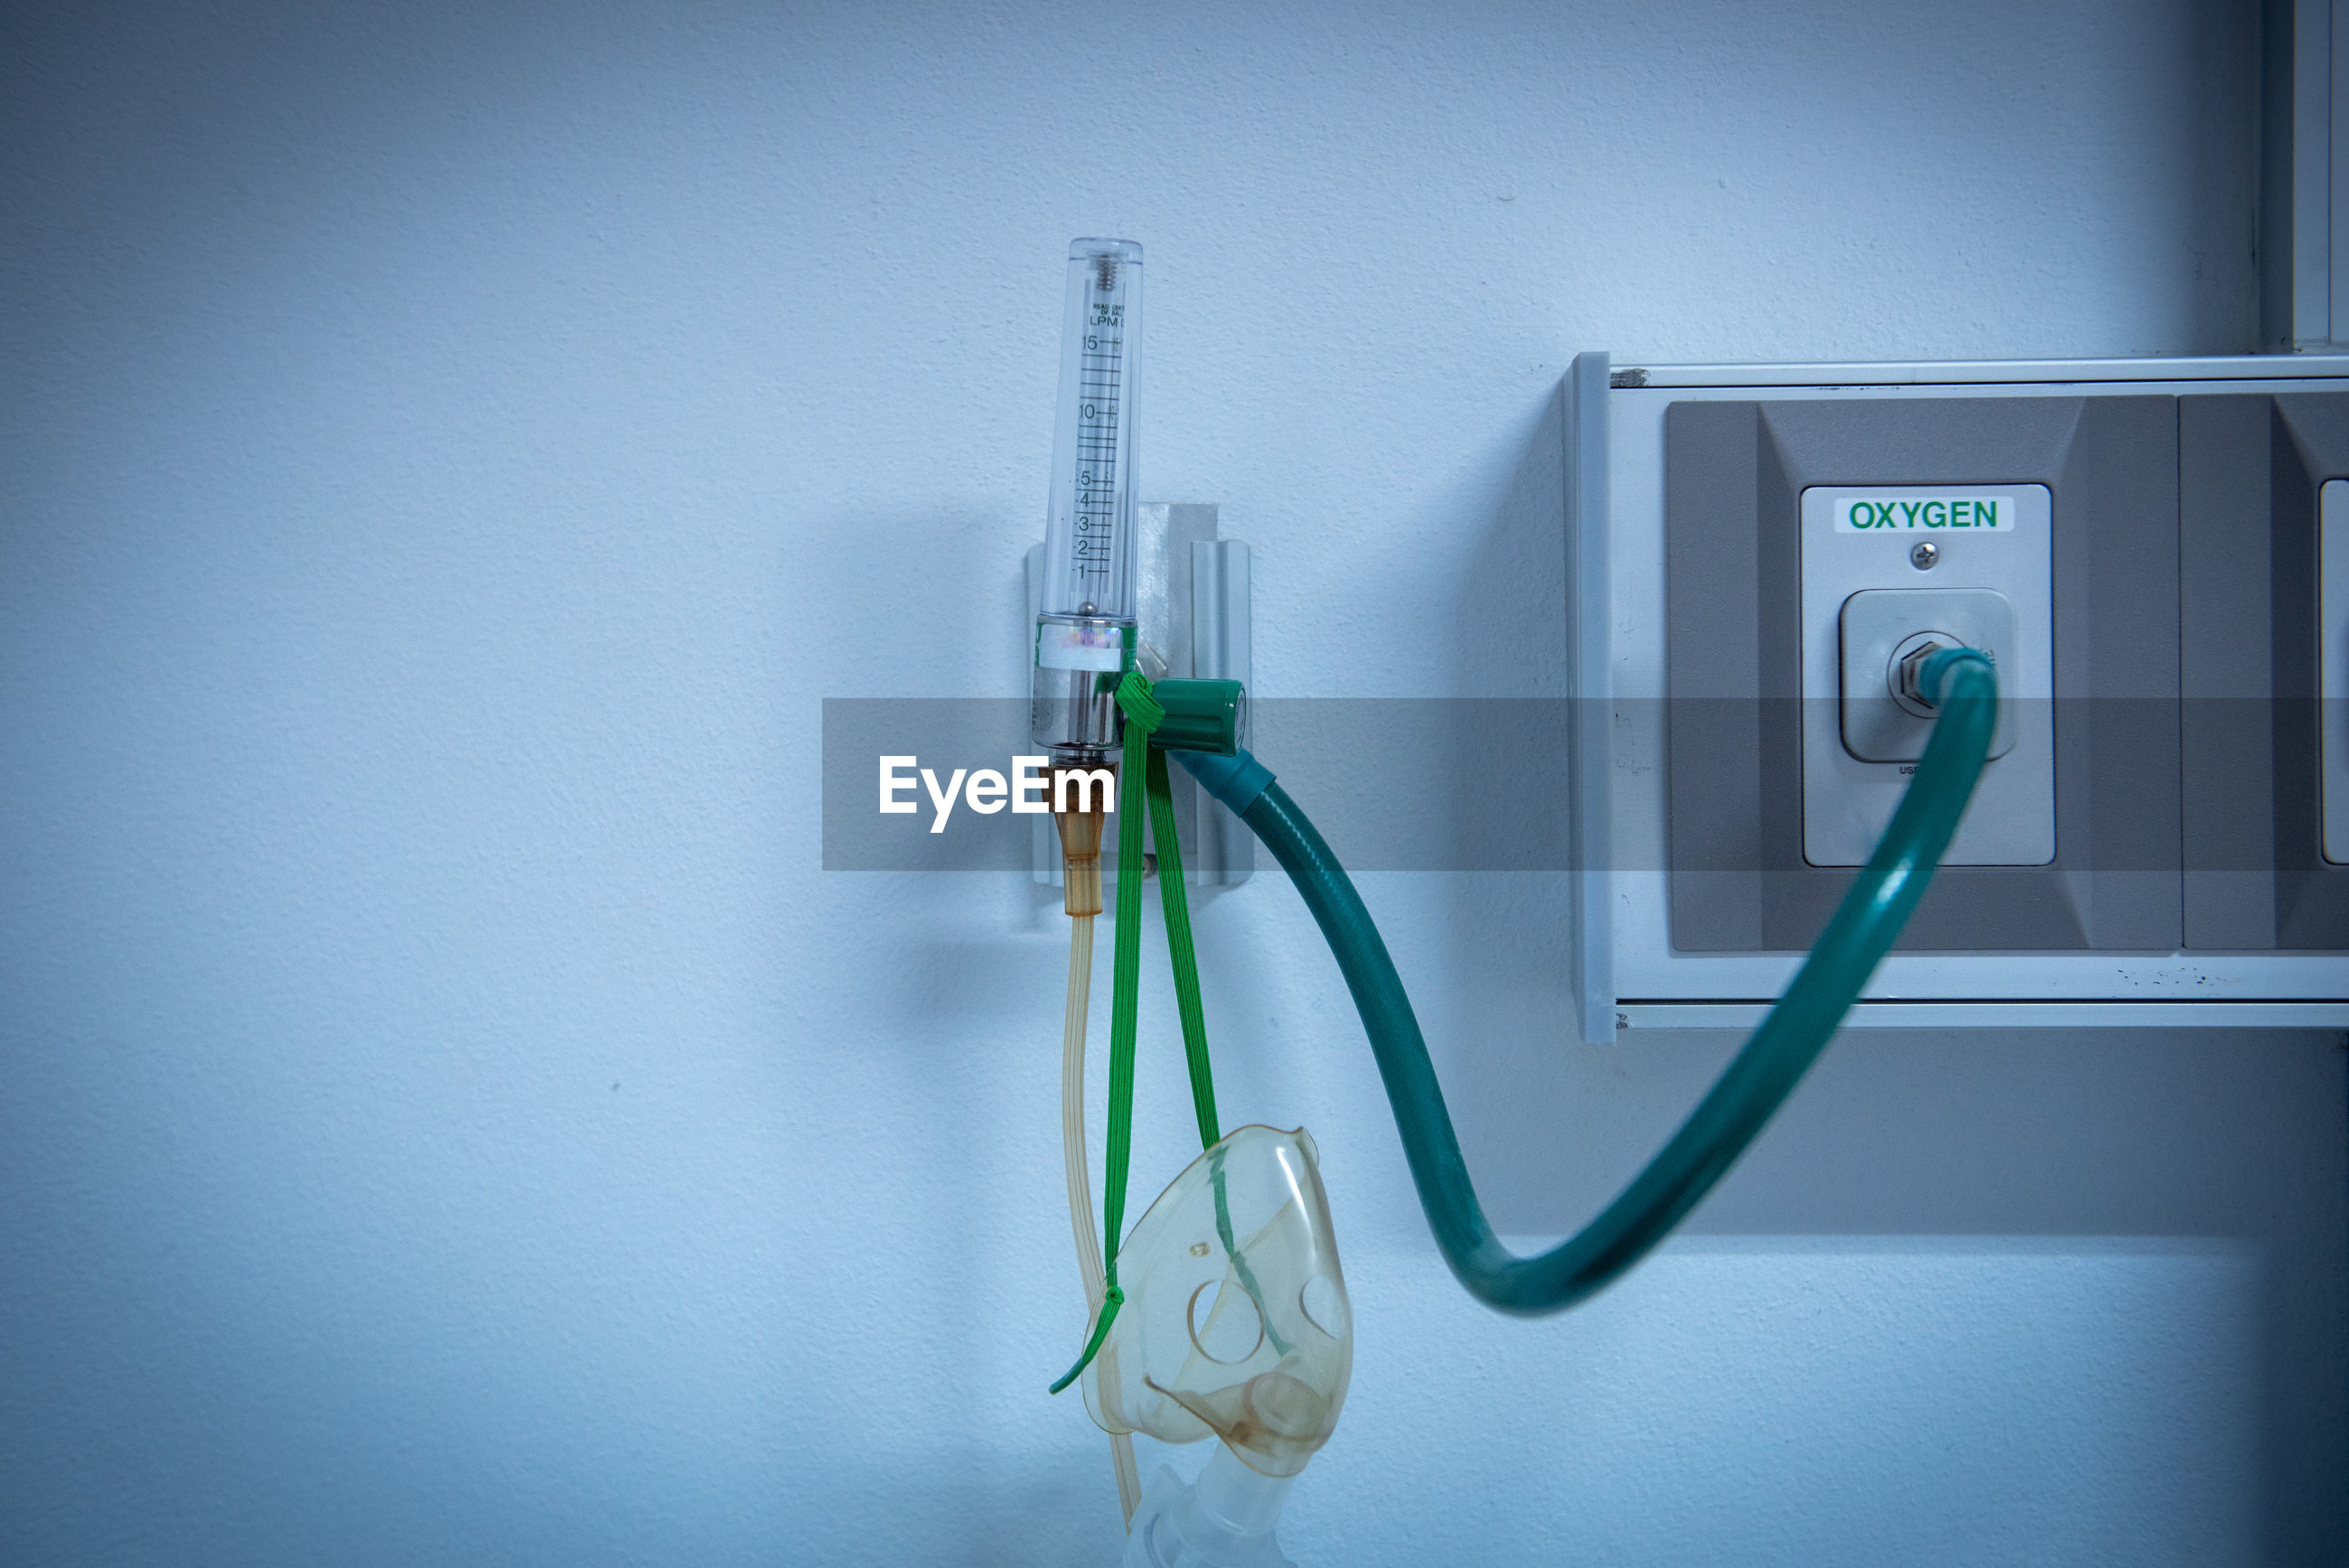 Close-up of oxygen tank mounted on wall